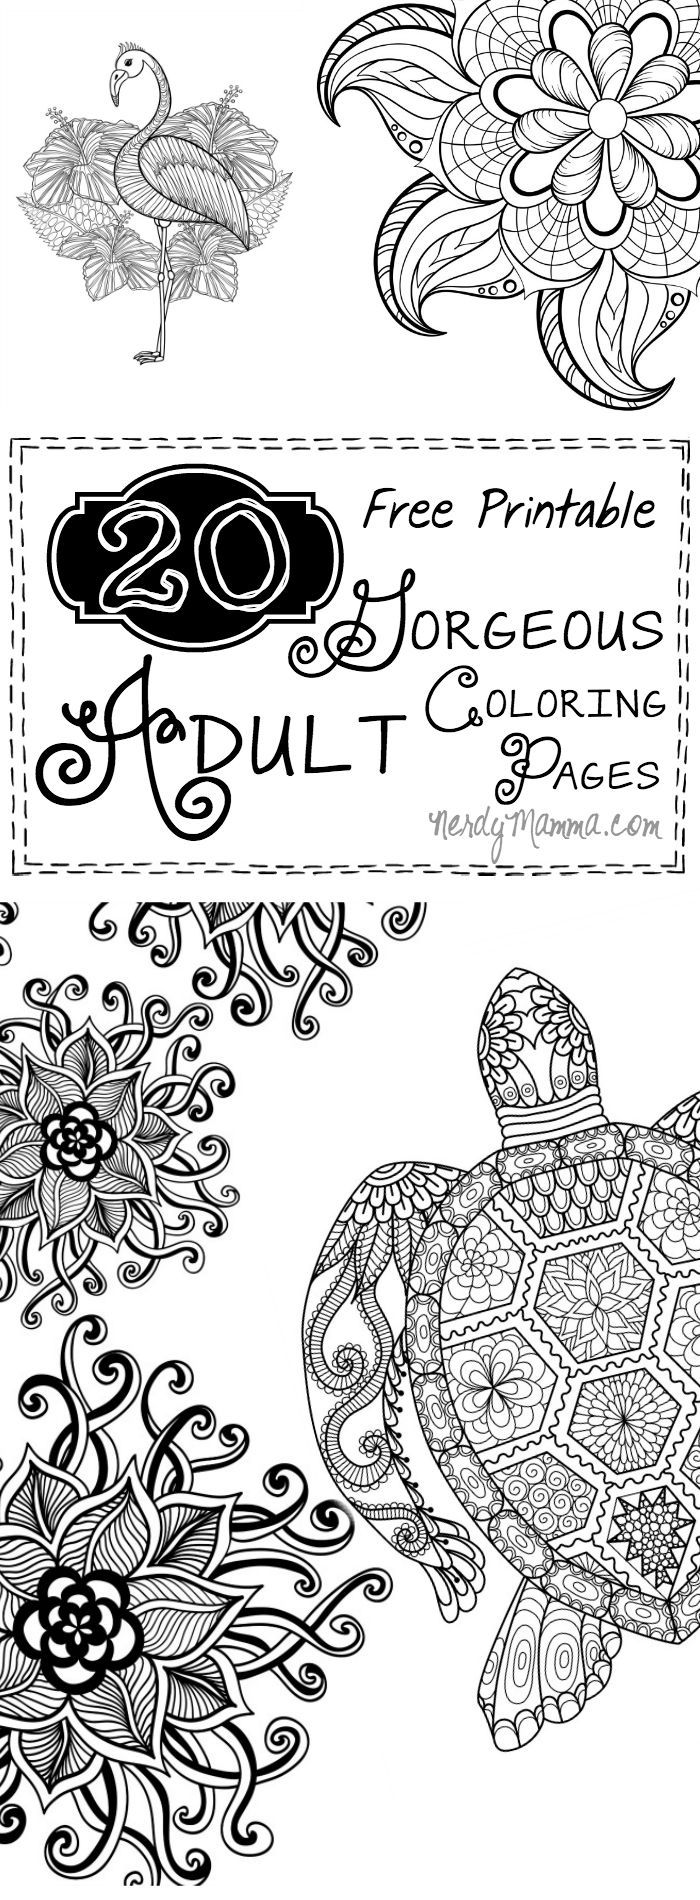 8520 best coloring pages images on pinterest coloring